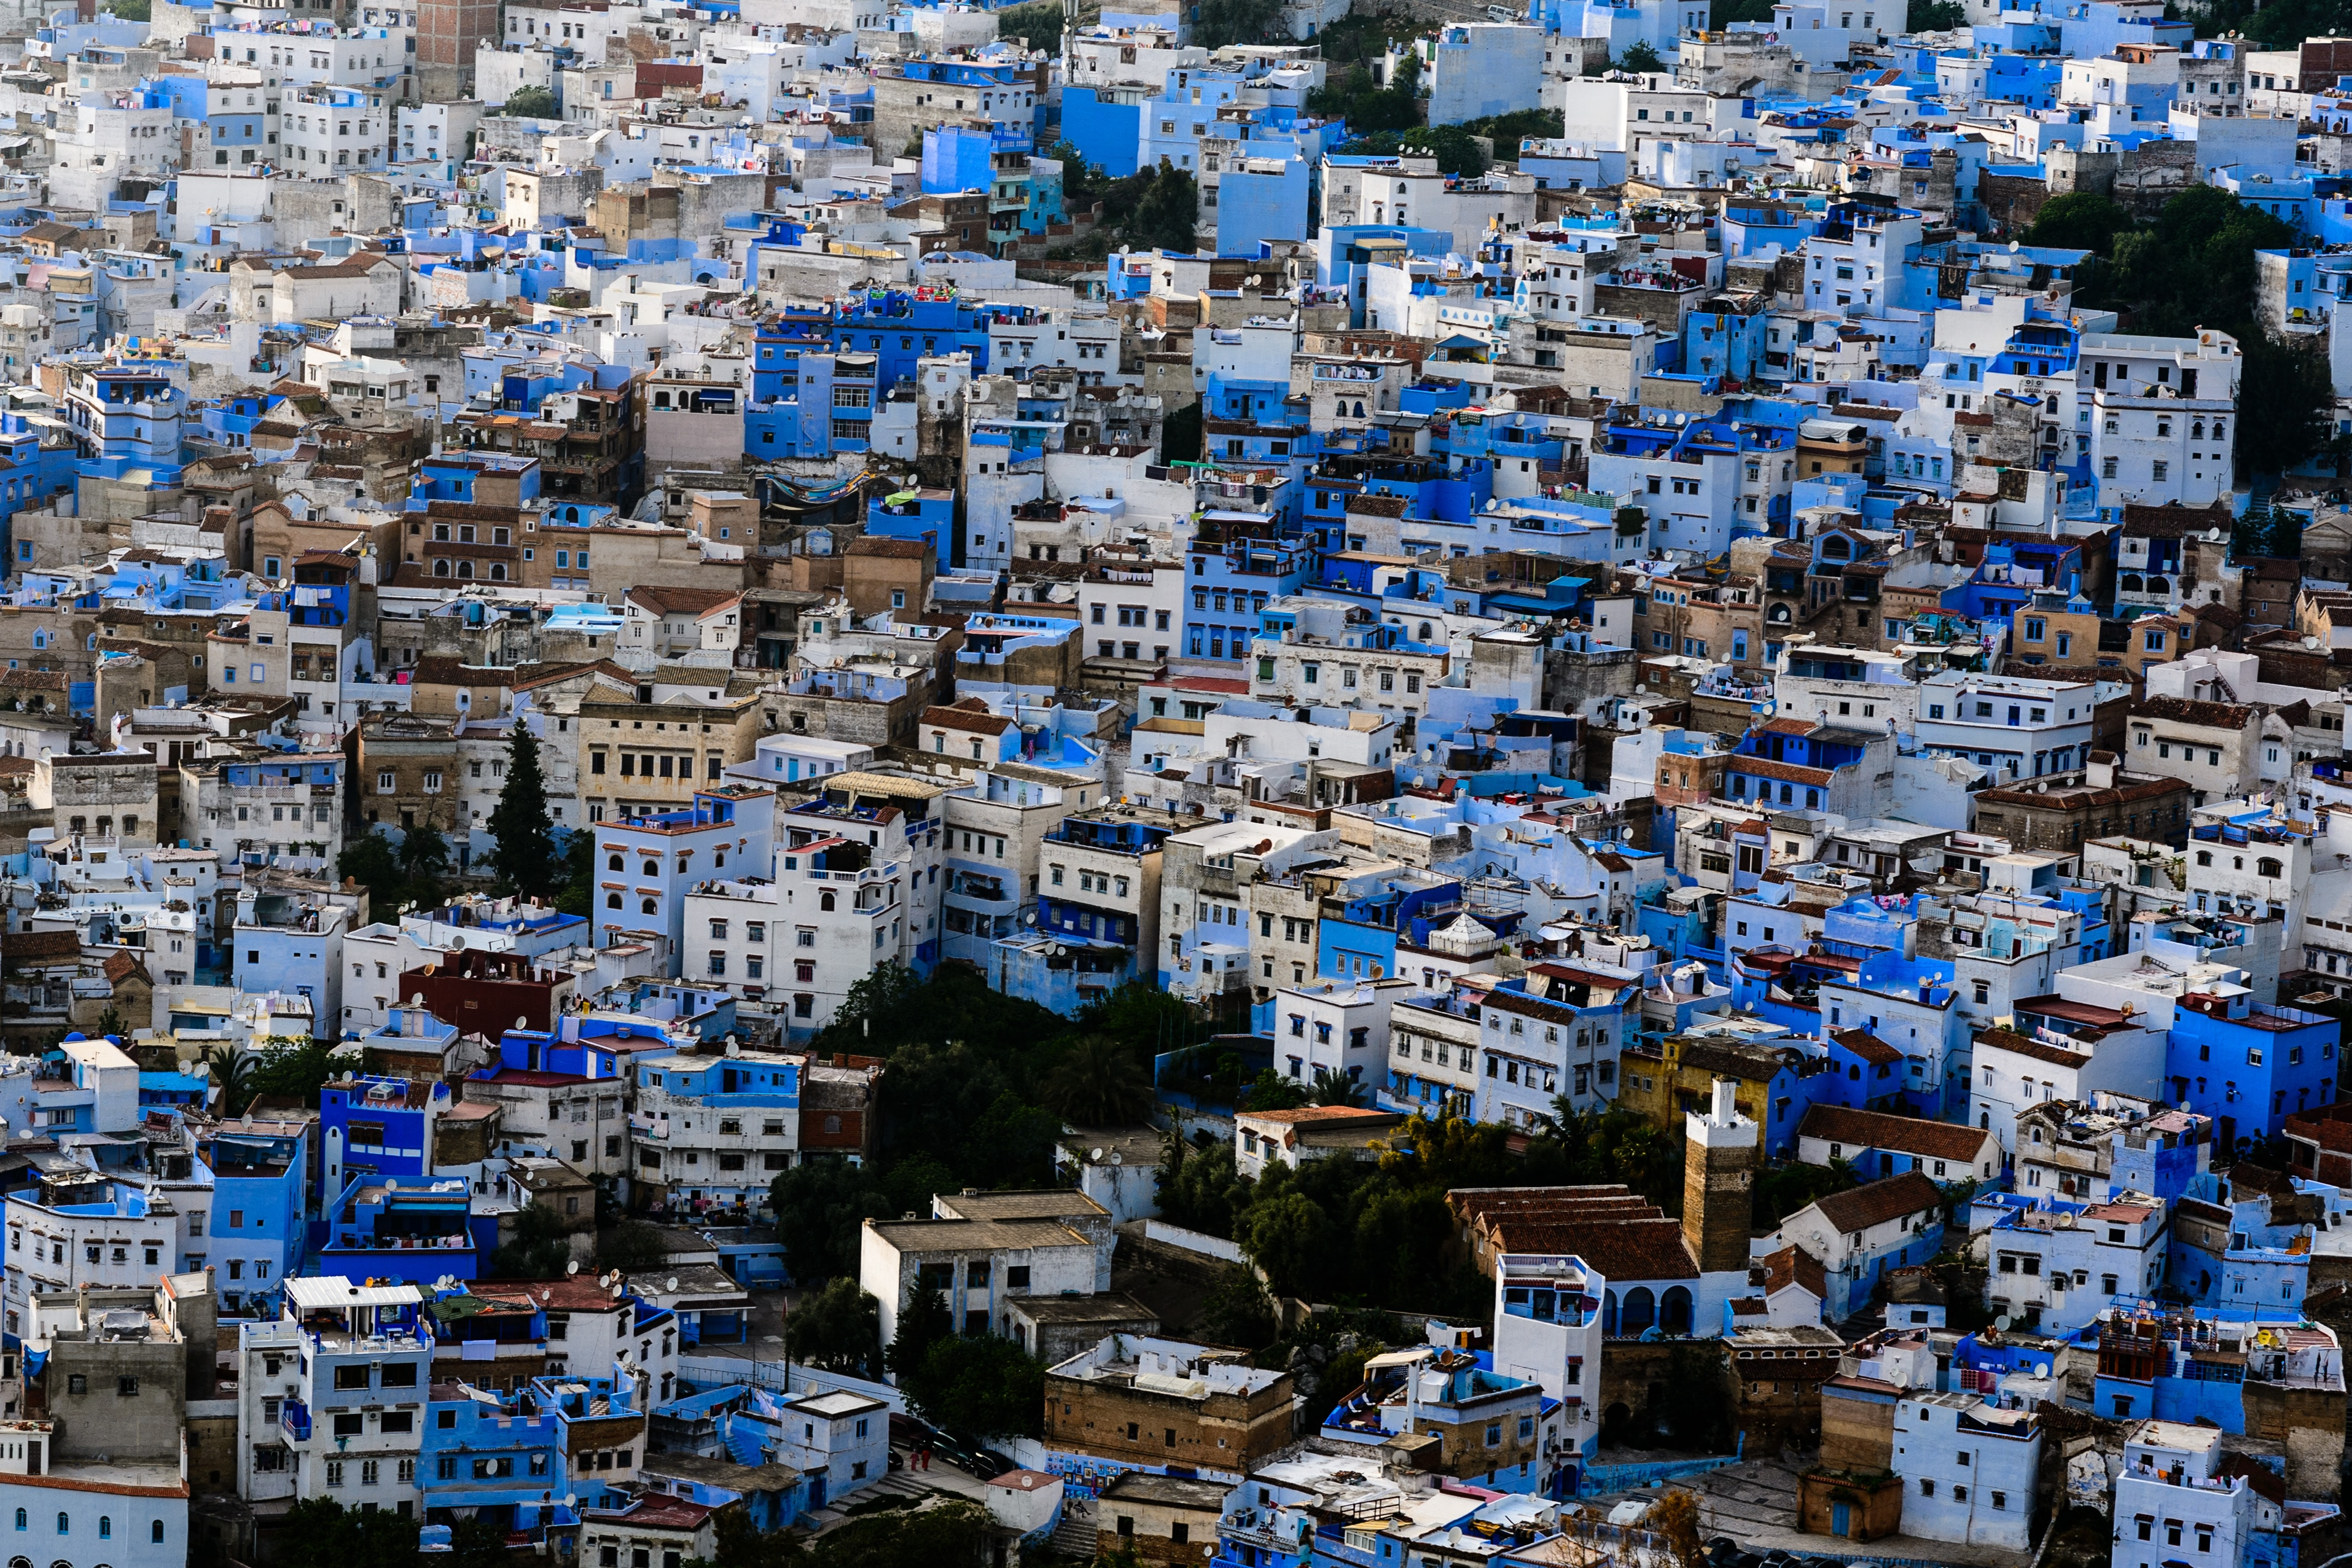 Chefchaouen – The Blue City